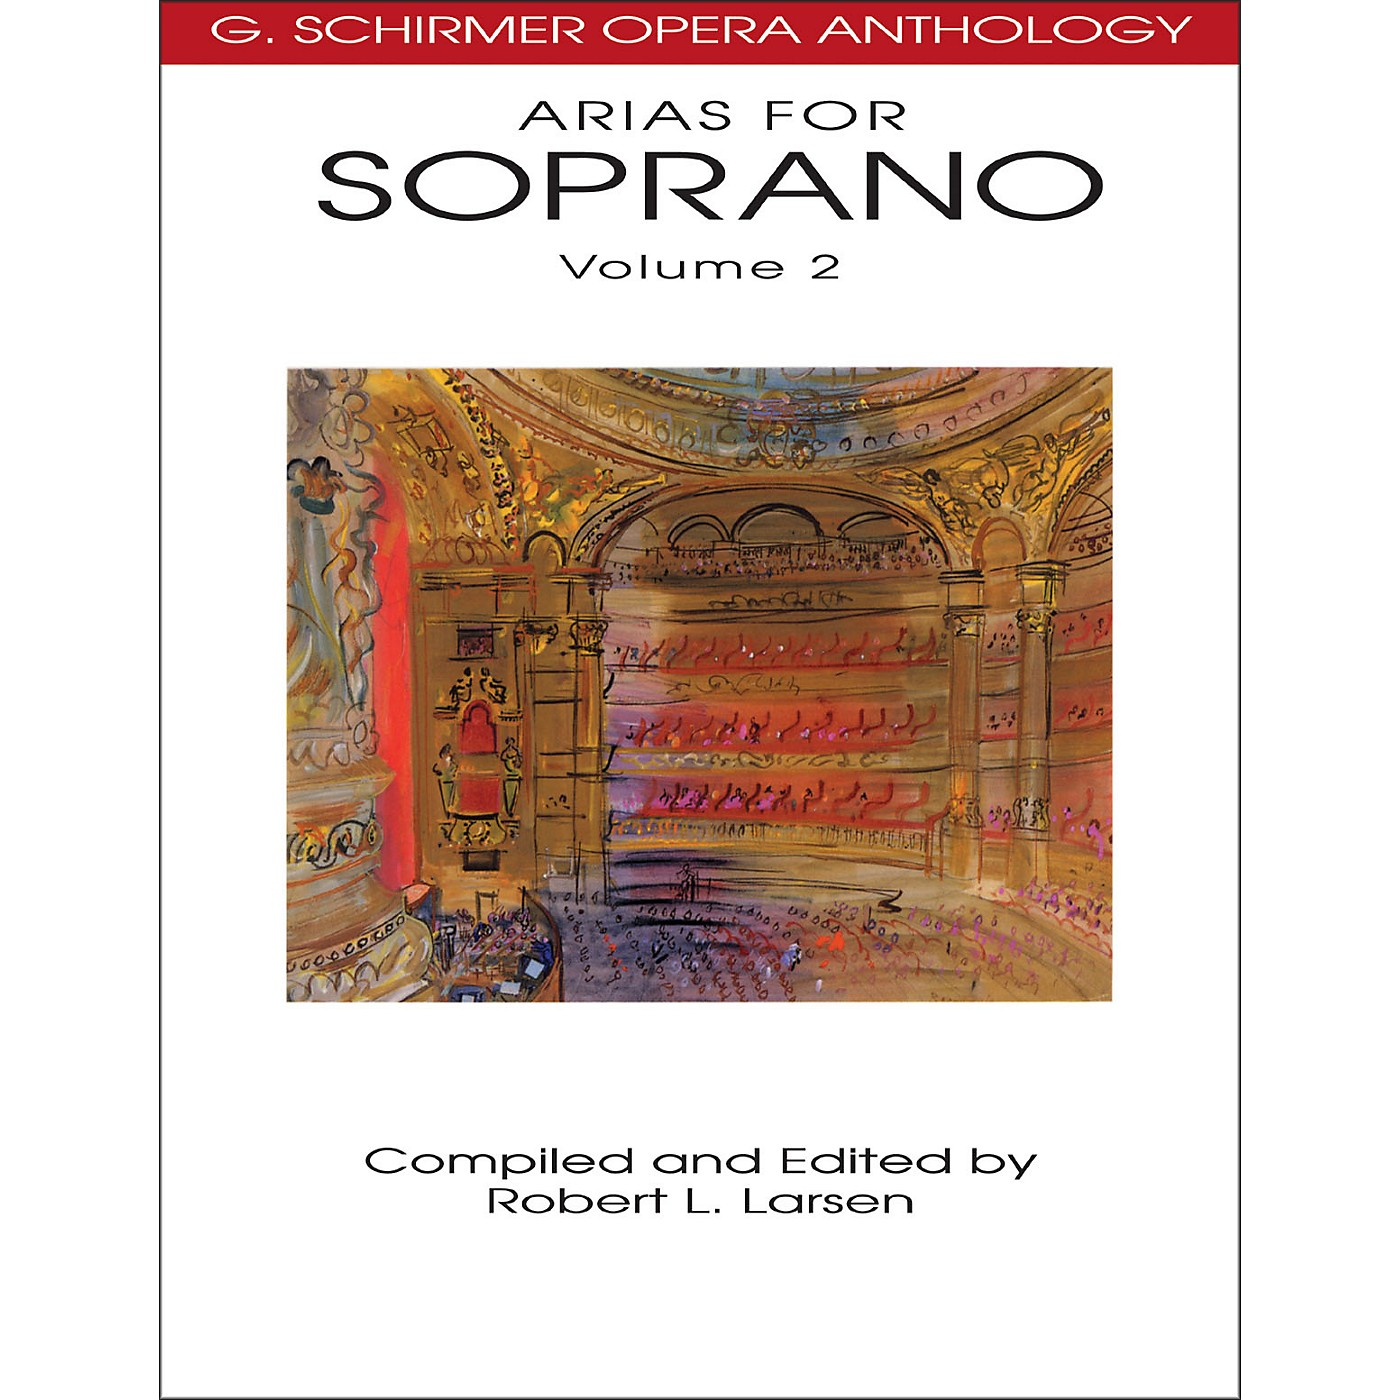 G. Schirmer Arias for Soprano Volume 2 G Schirmer Opera Anthology thumbnail